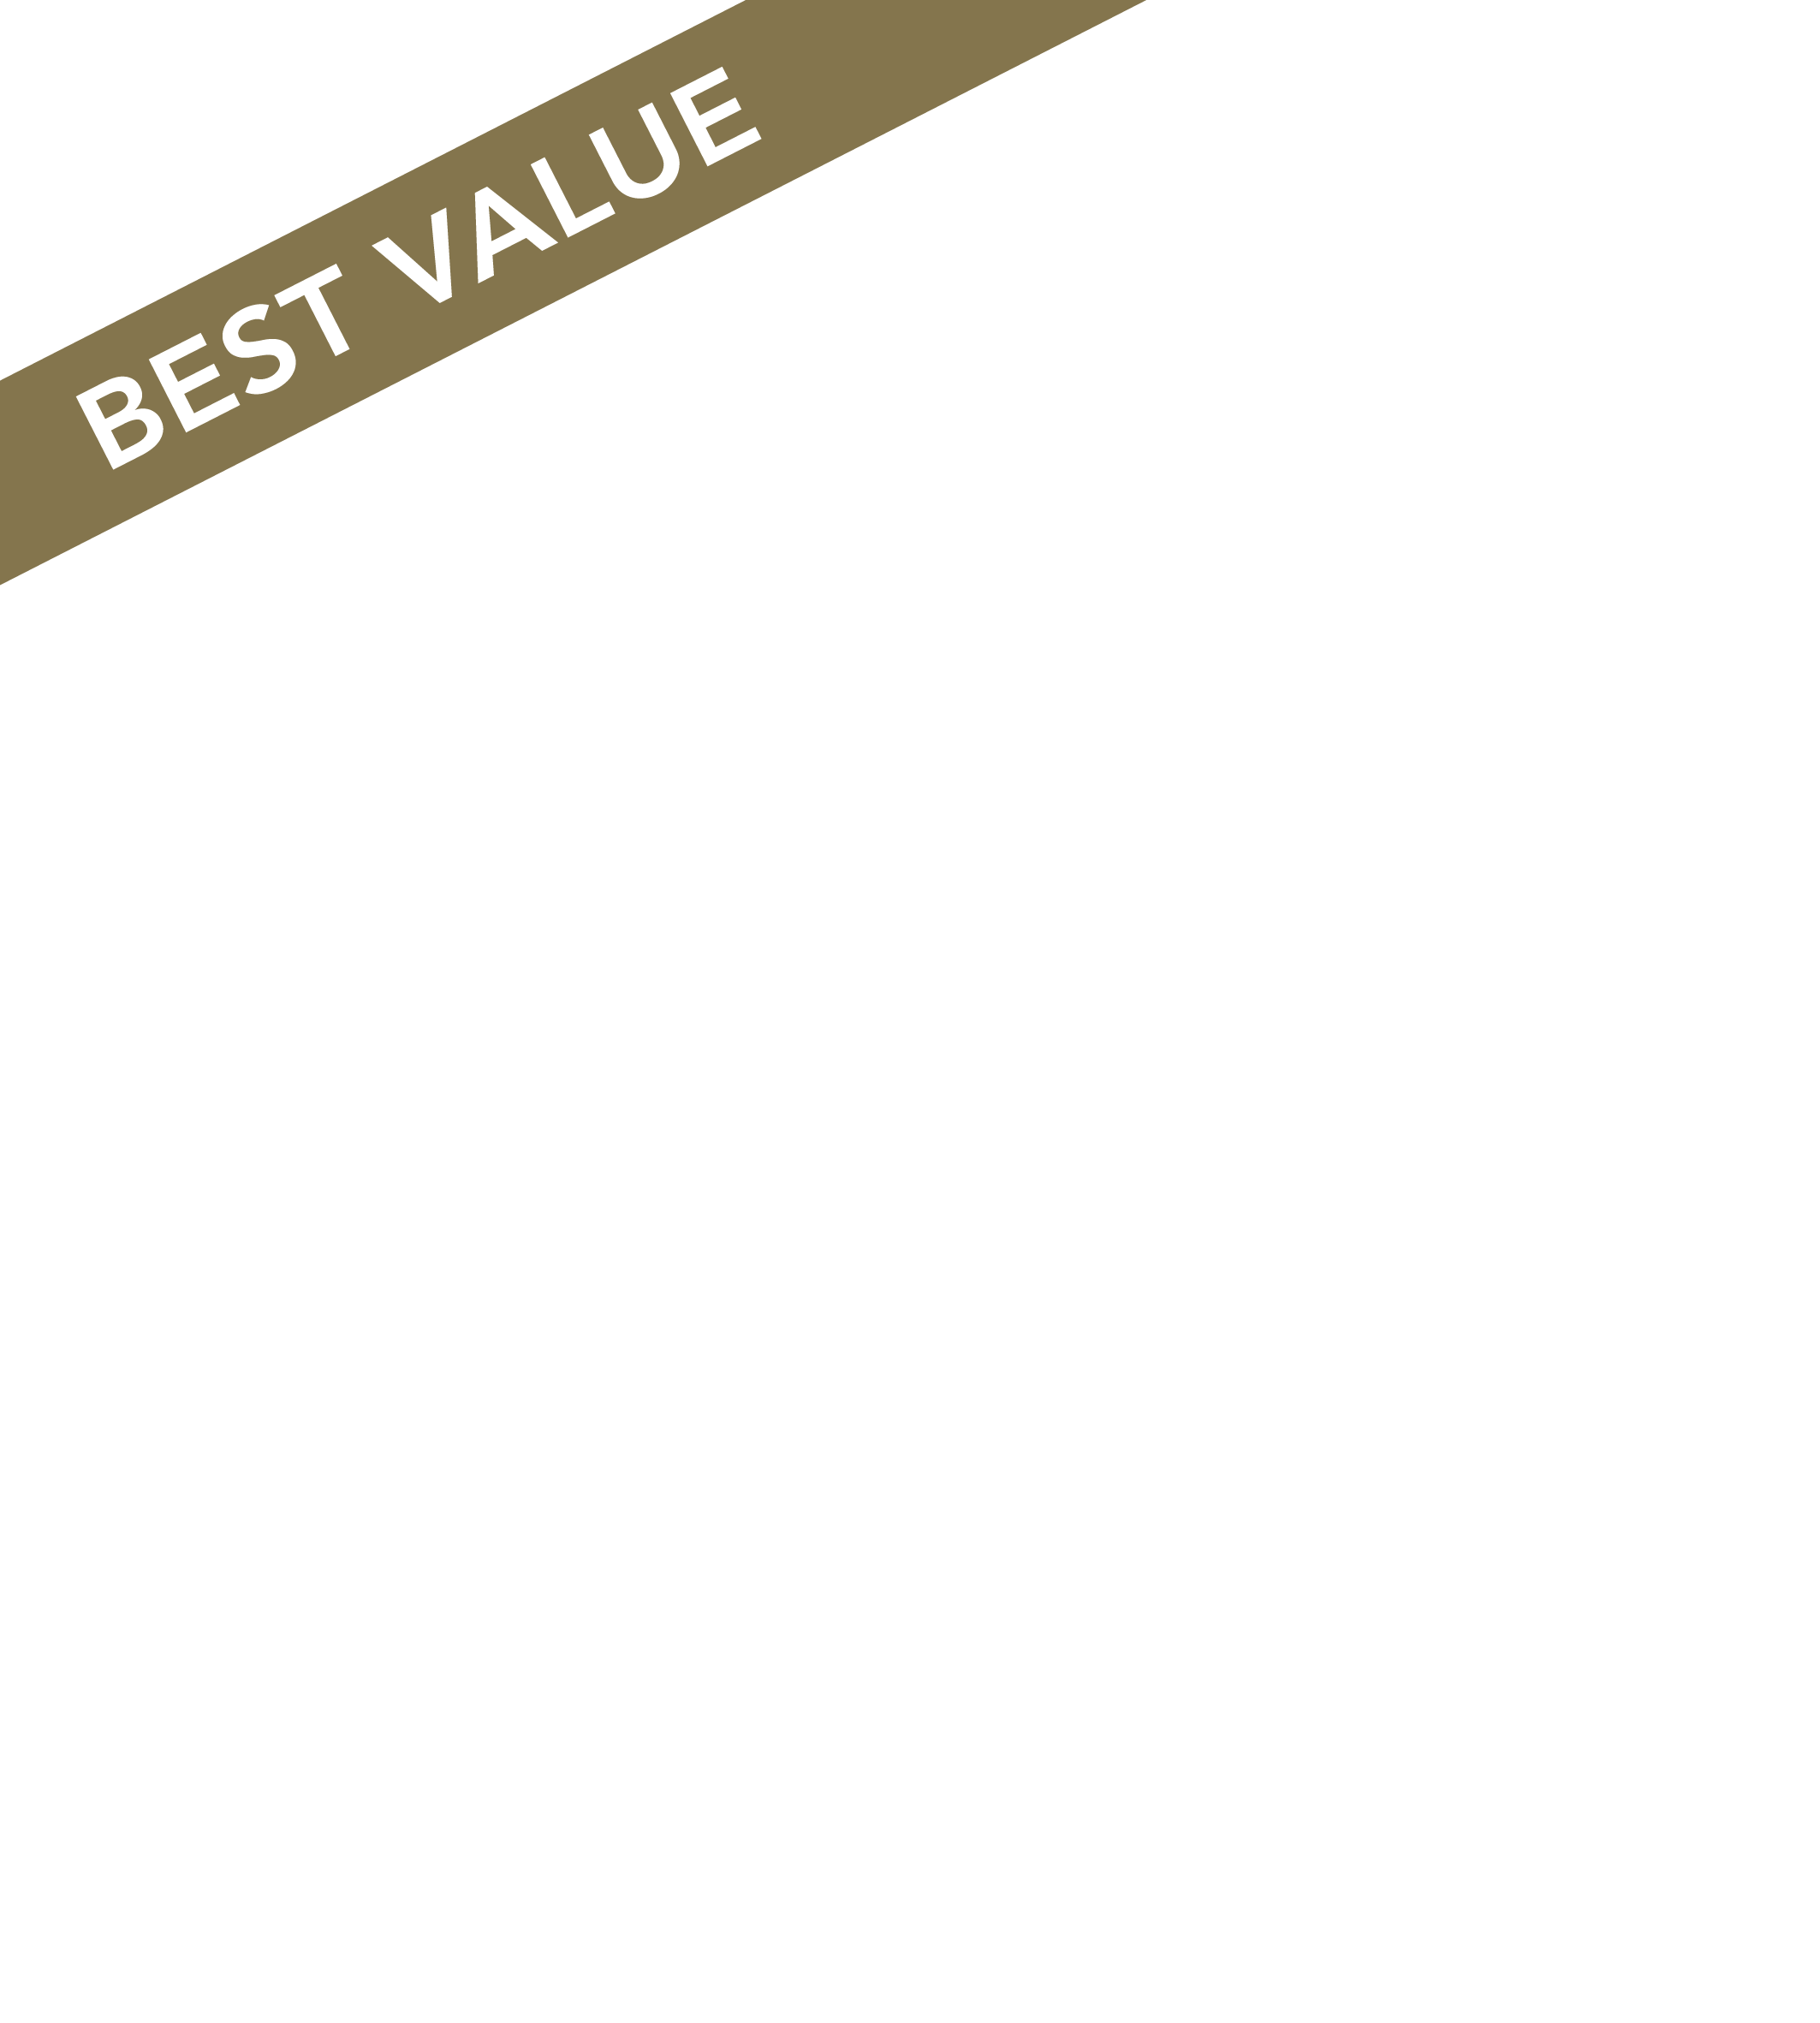 Best Value